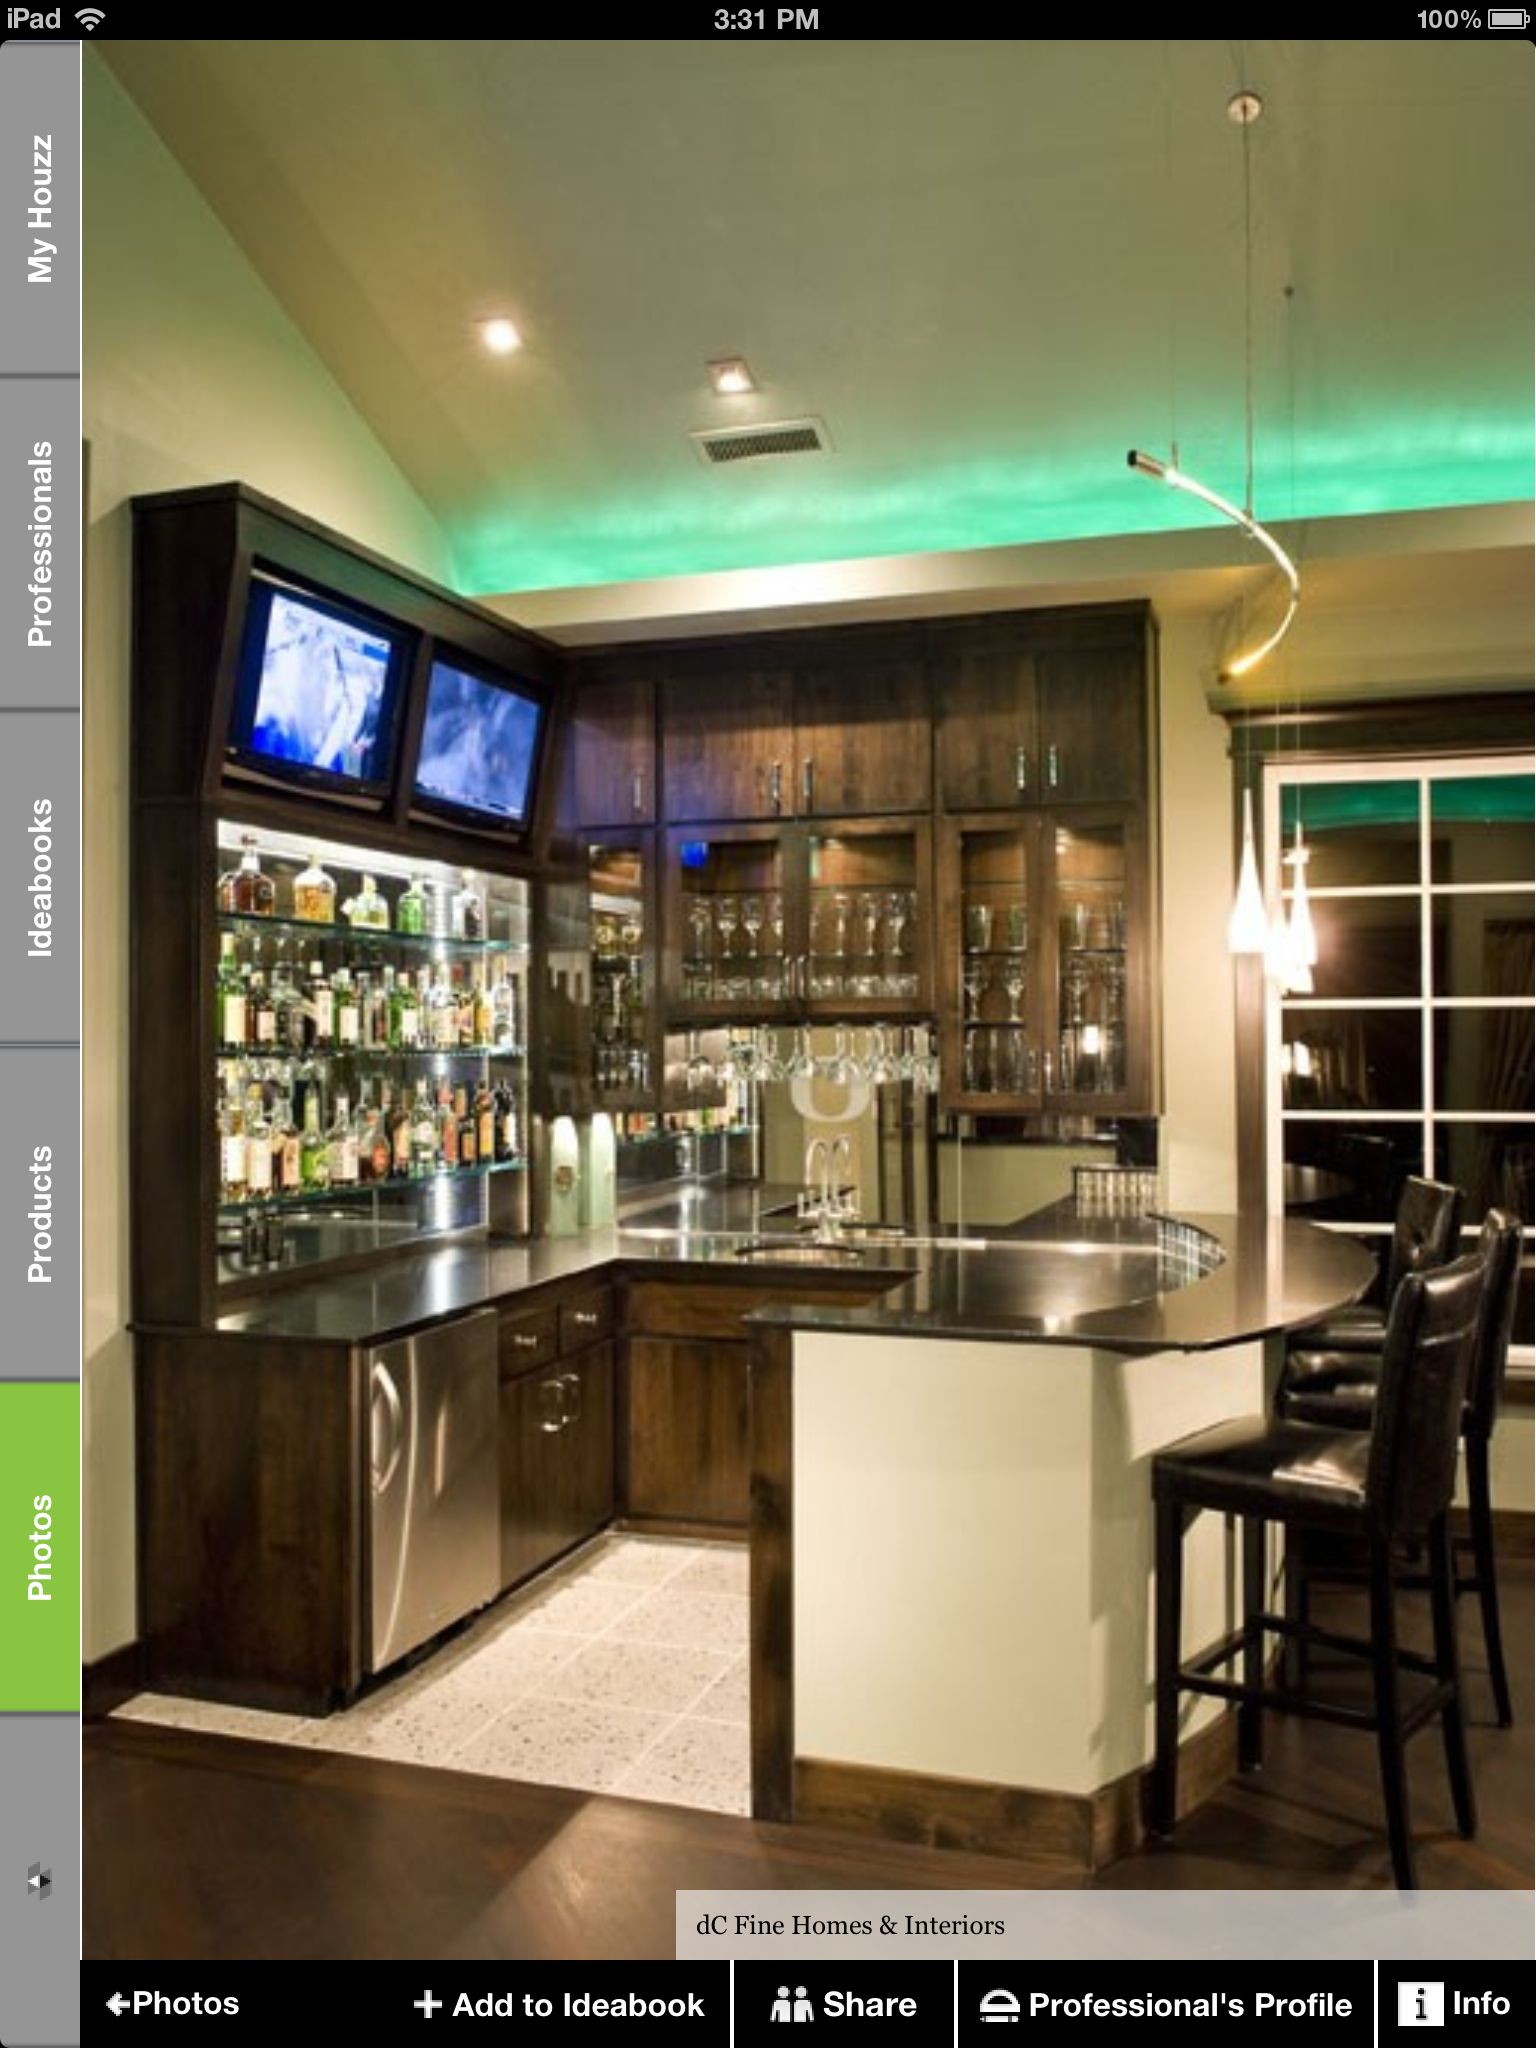 Awesome corner bar i neeeeed it house ideas pinterest bars